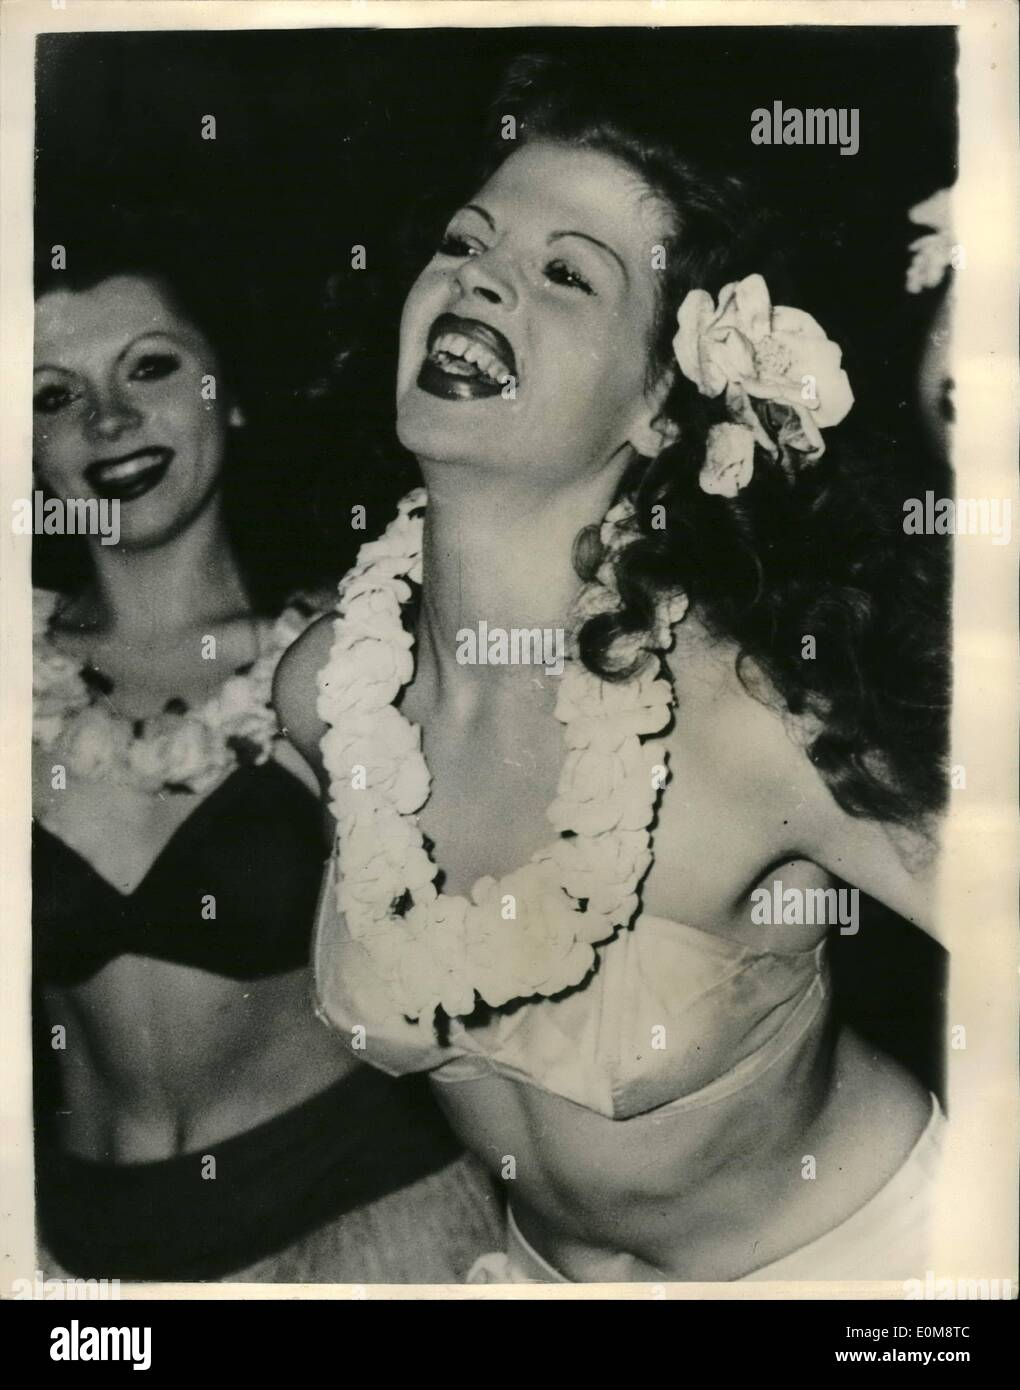 Dec. 19, 1953 - 19-12-53 They call her the German Rita . Lovely dancer in Munich. Looking very much like the Dancing Goddess is German dancer Hannelore Diez, who they claim is a double of Rita Hayworth. Hannelore is the star of the Cabaret Metro Girls which appear every night at the Bongo Bar in Munich. - Stock Image